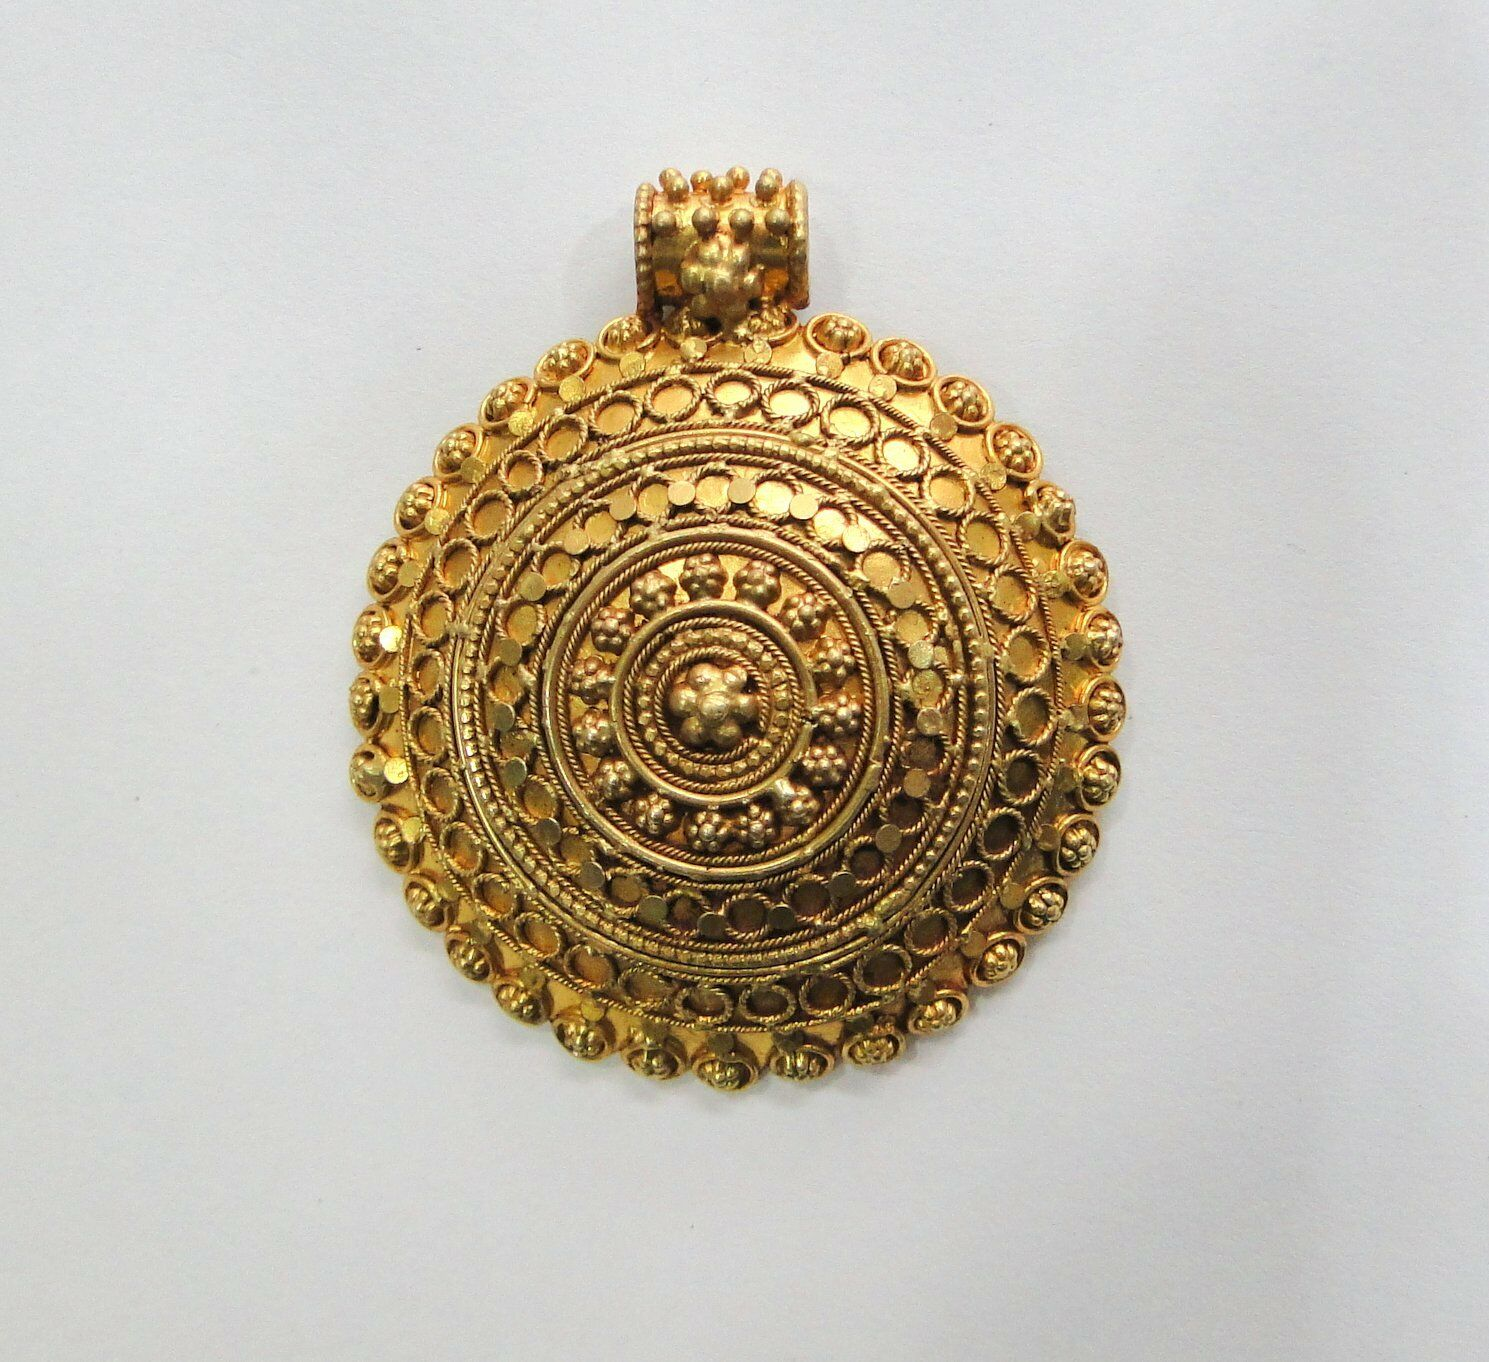 ``Vintage antique solid 18K gold jewelry handmade Pendant amulet Rajasthan India